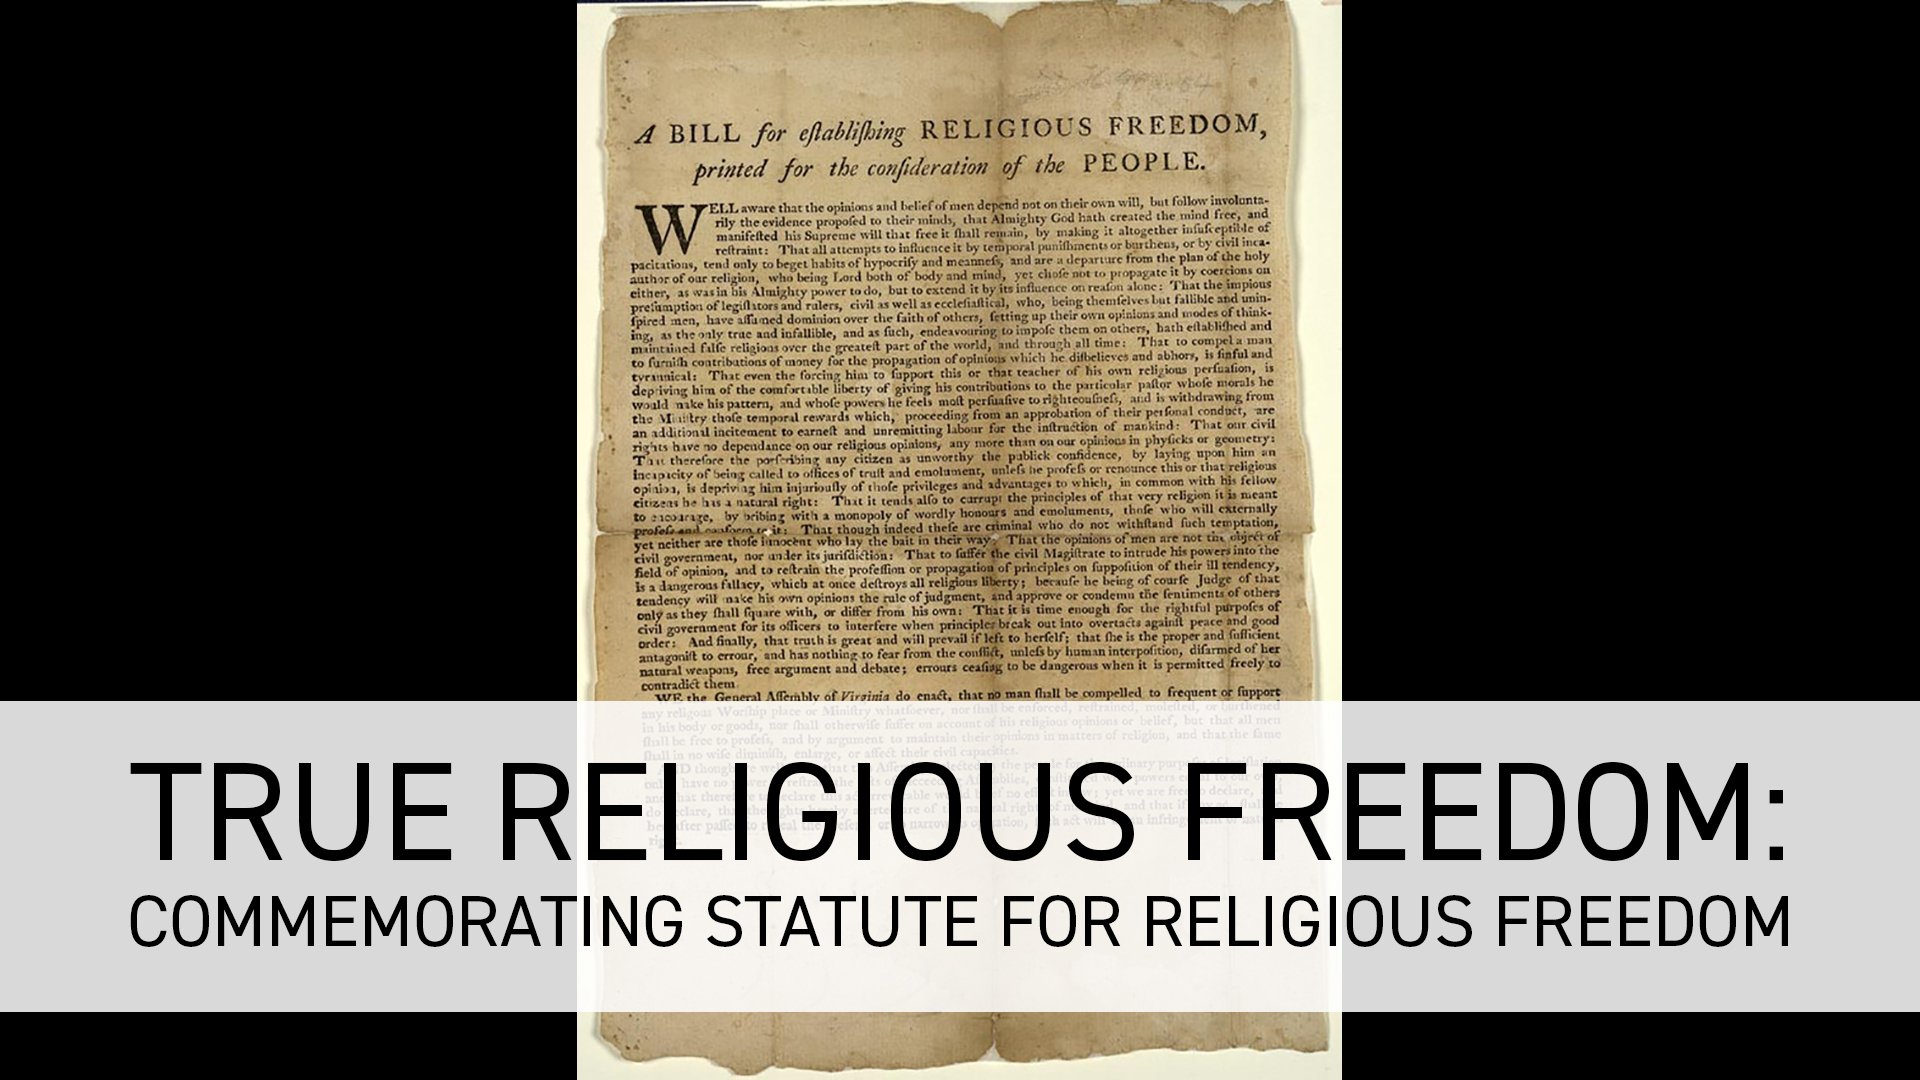 Join us on FFRF's Facebook page, Wednesday at noon central time for Ask An Atheist. This week, we'll discuss this important Virginia law.